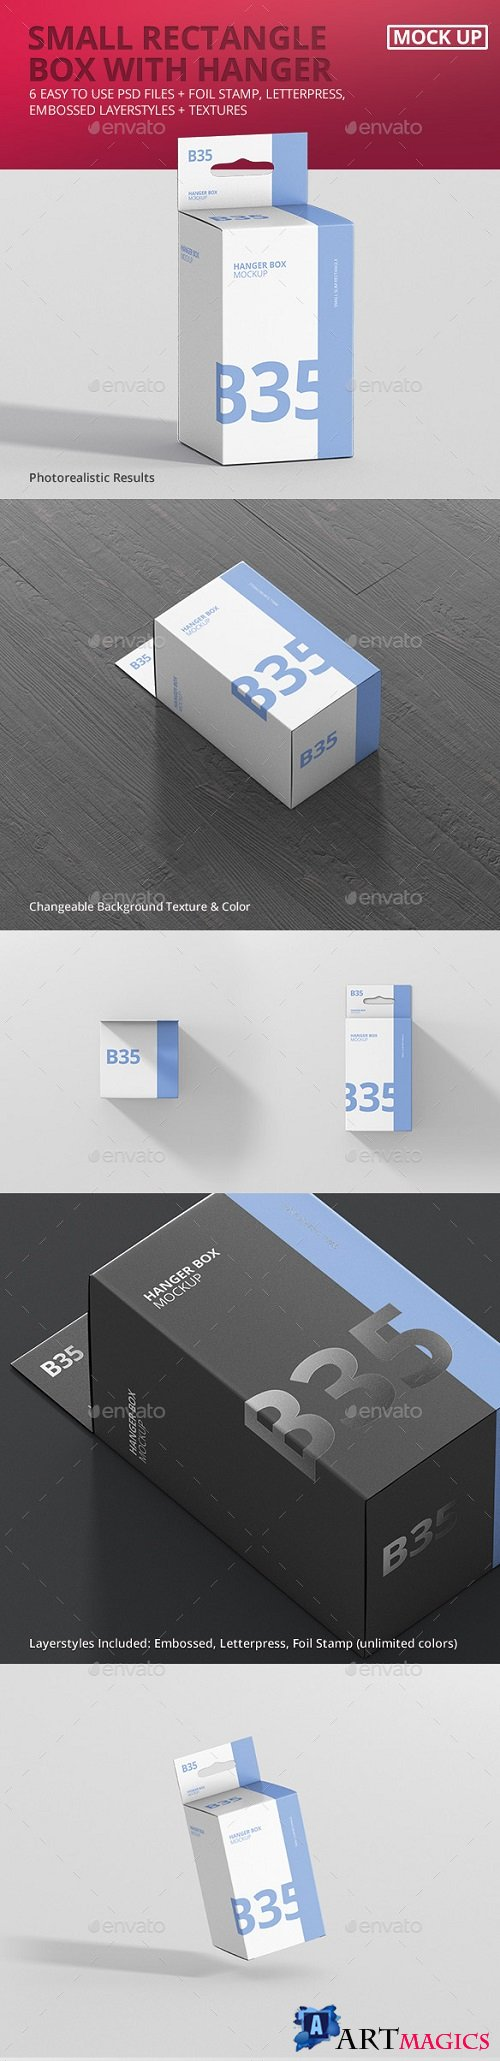 Box Mockup - Small Rectangle Size with Hanger - 21298423